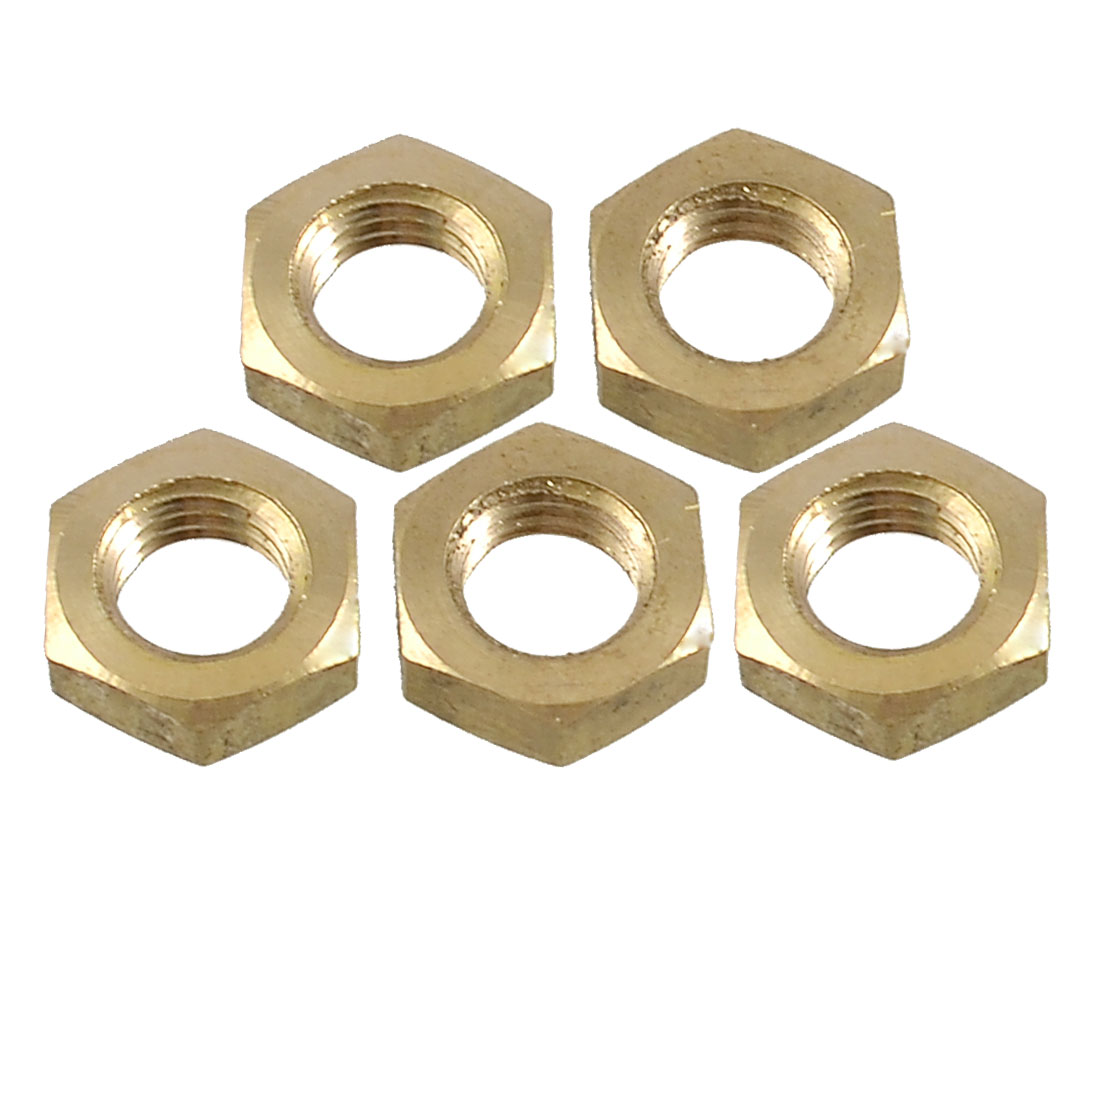 "5 x 15/32"" Female Threaded Hex Head Grub Screw Nuts Gold Tone"